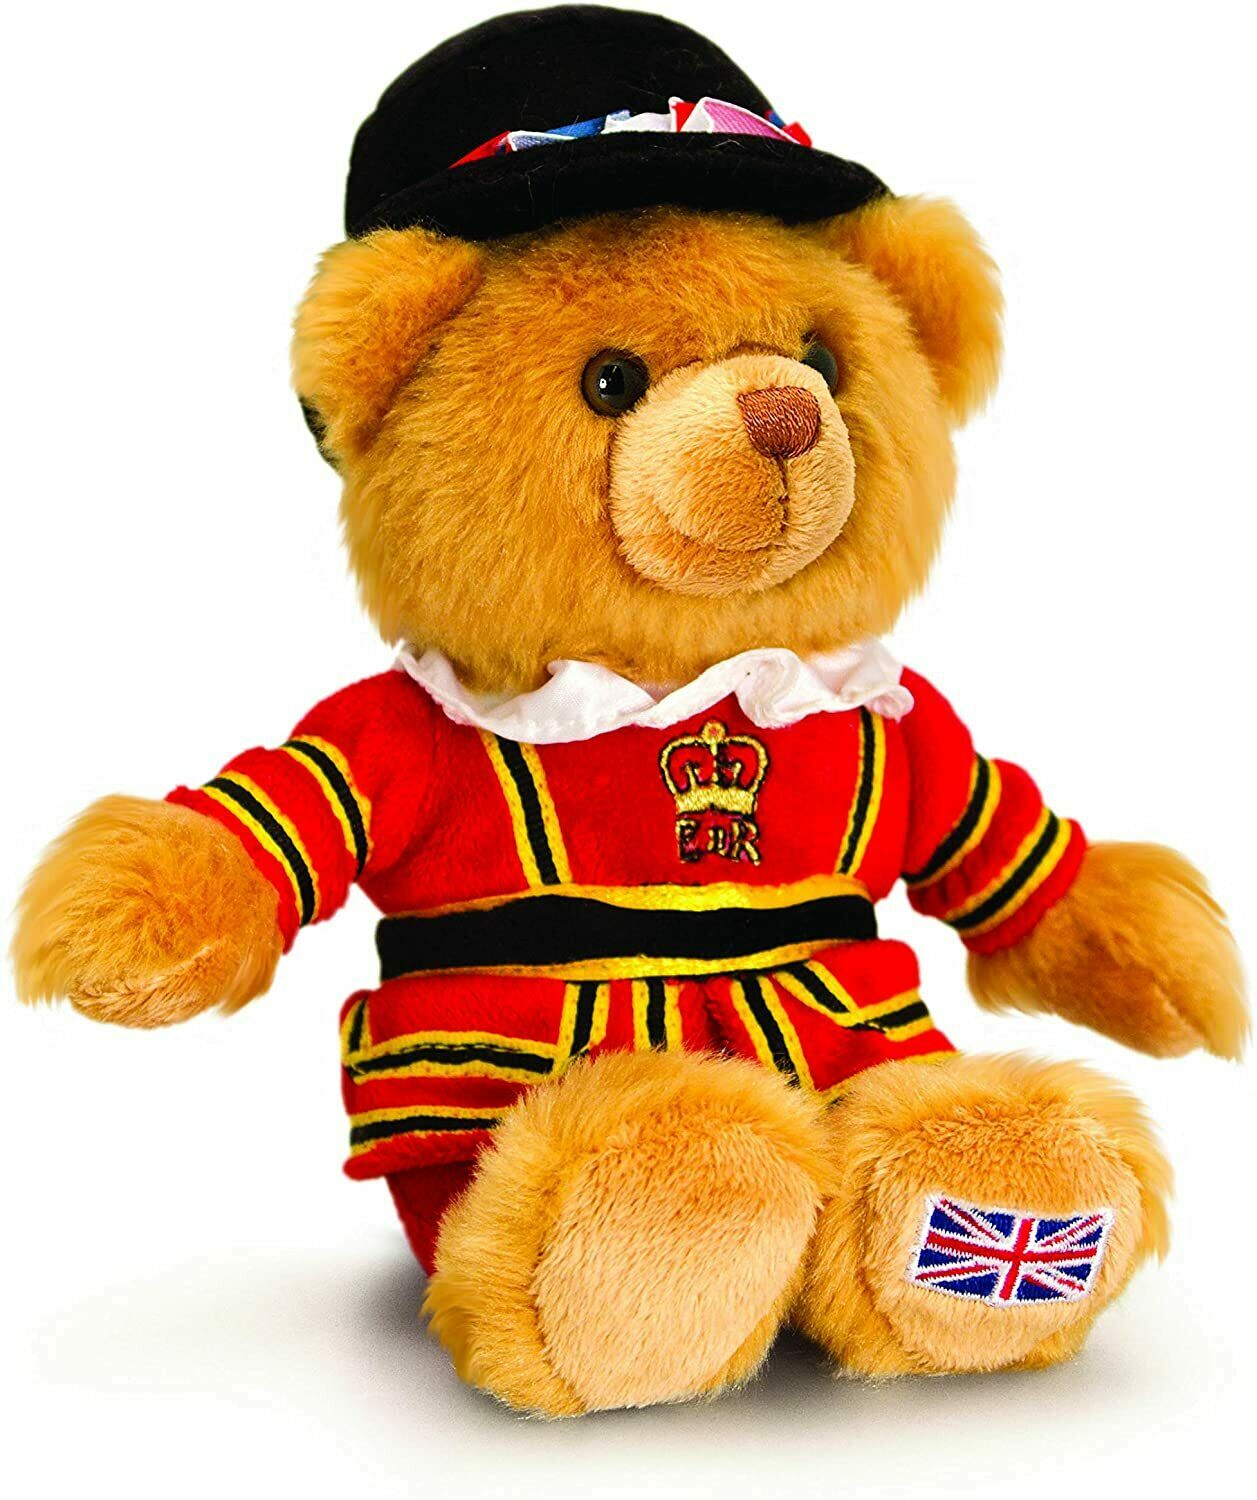 Keel Toys 15 cm London Beefeater Bear Tower of London Souvenir